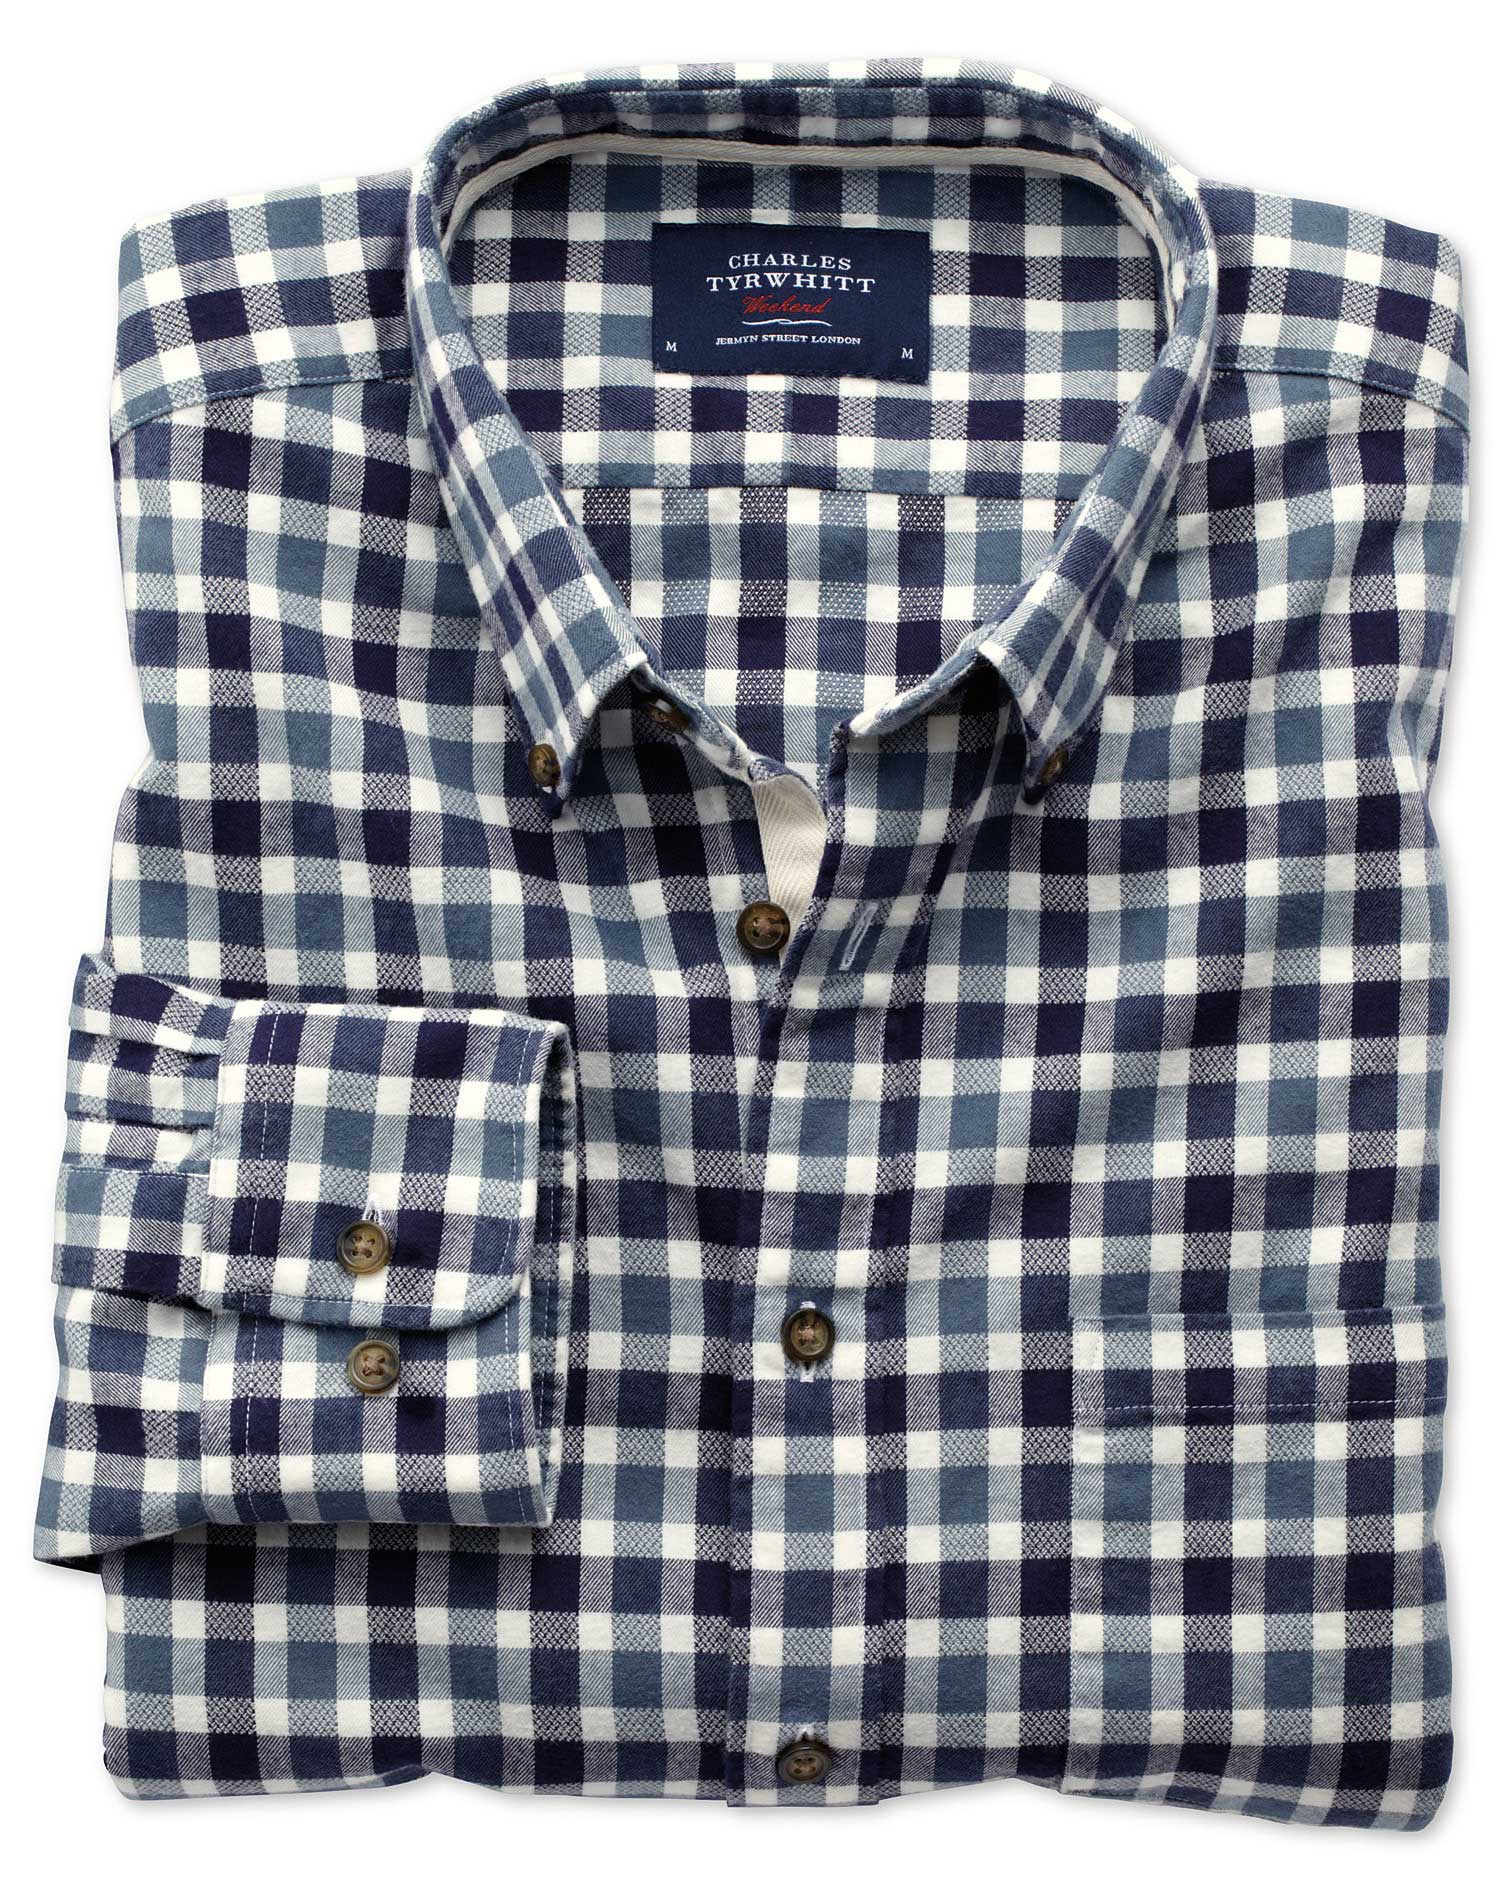 Slim Fit Navy and Blue Check Brushed Dobby Cotton Shirt Single Cuff Size XS by Charles Tyrwhitt